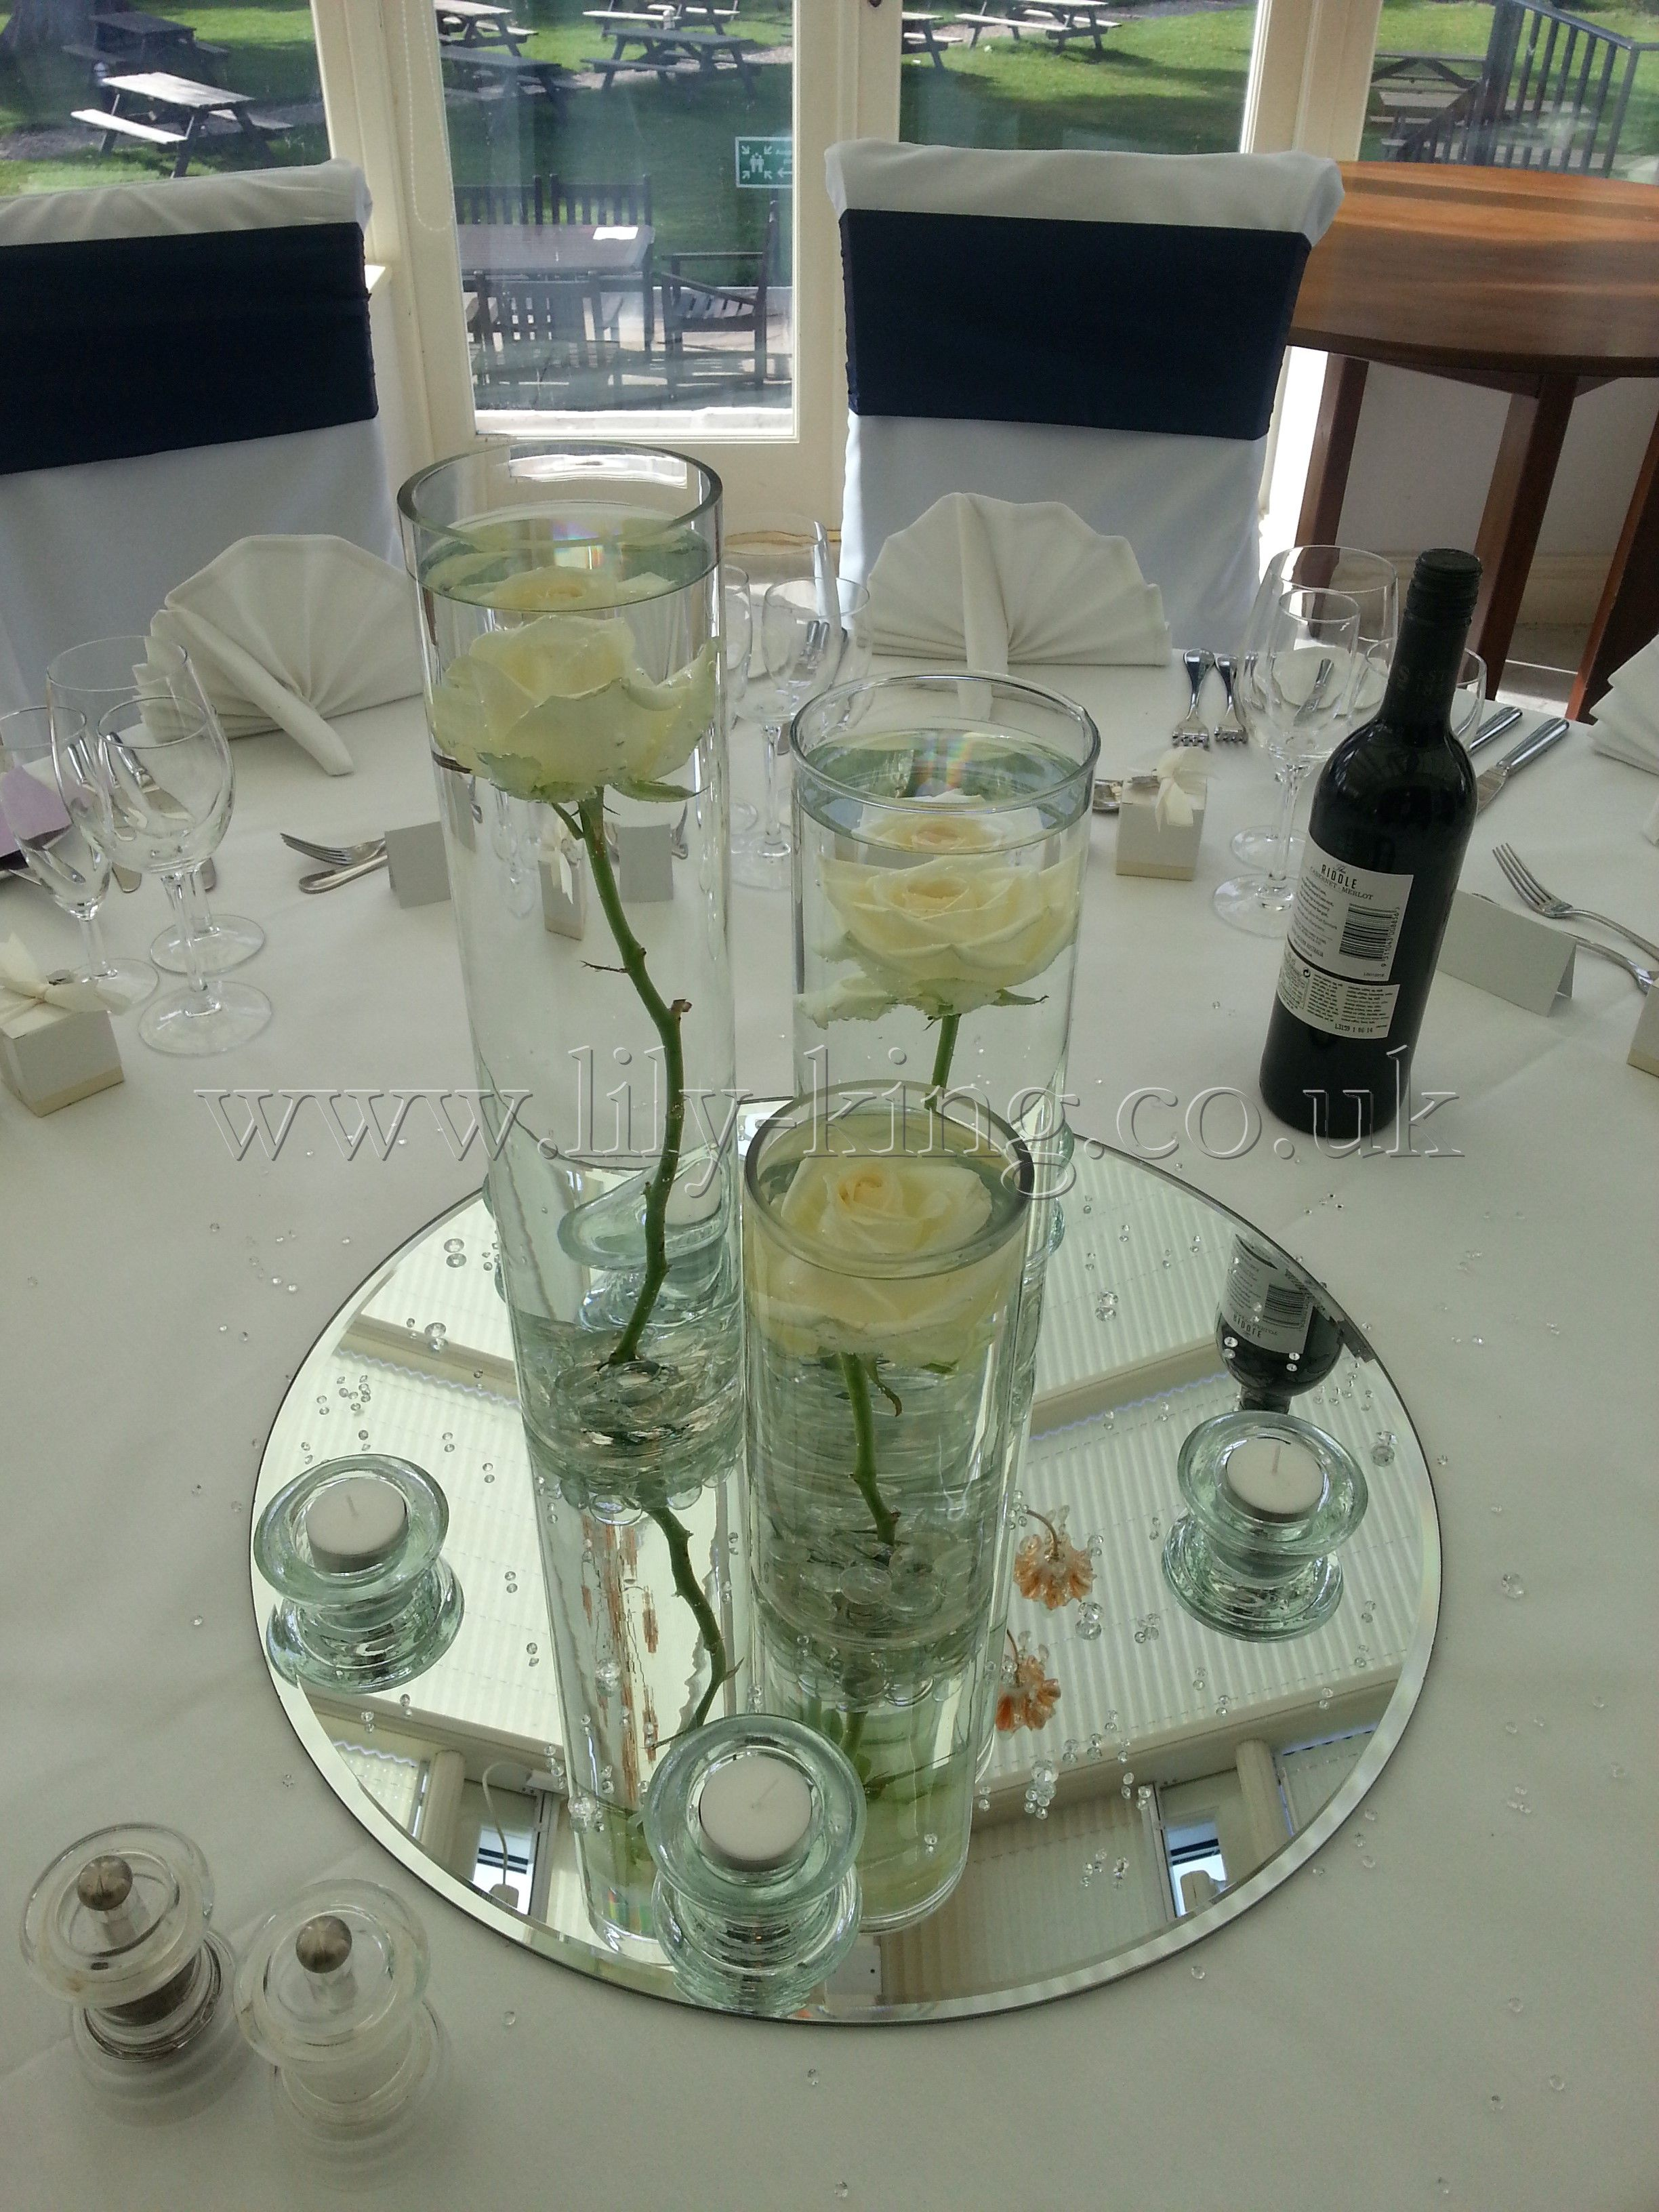 3 Cylinder Vases Of Varying Heights With A White Rose